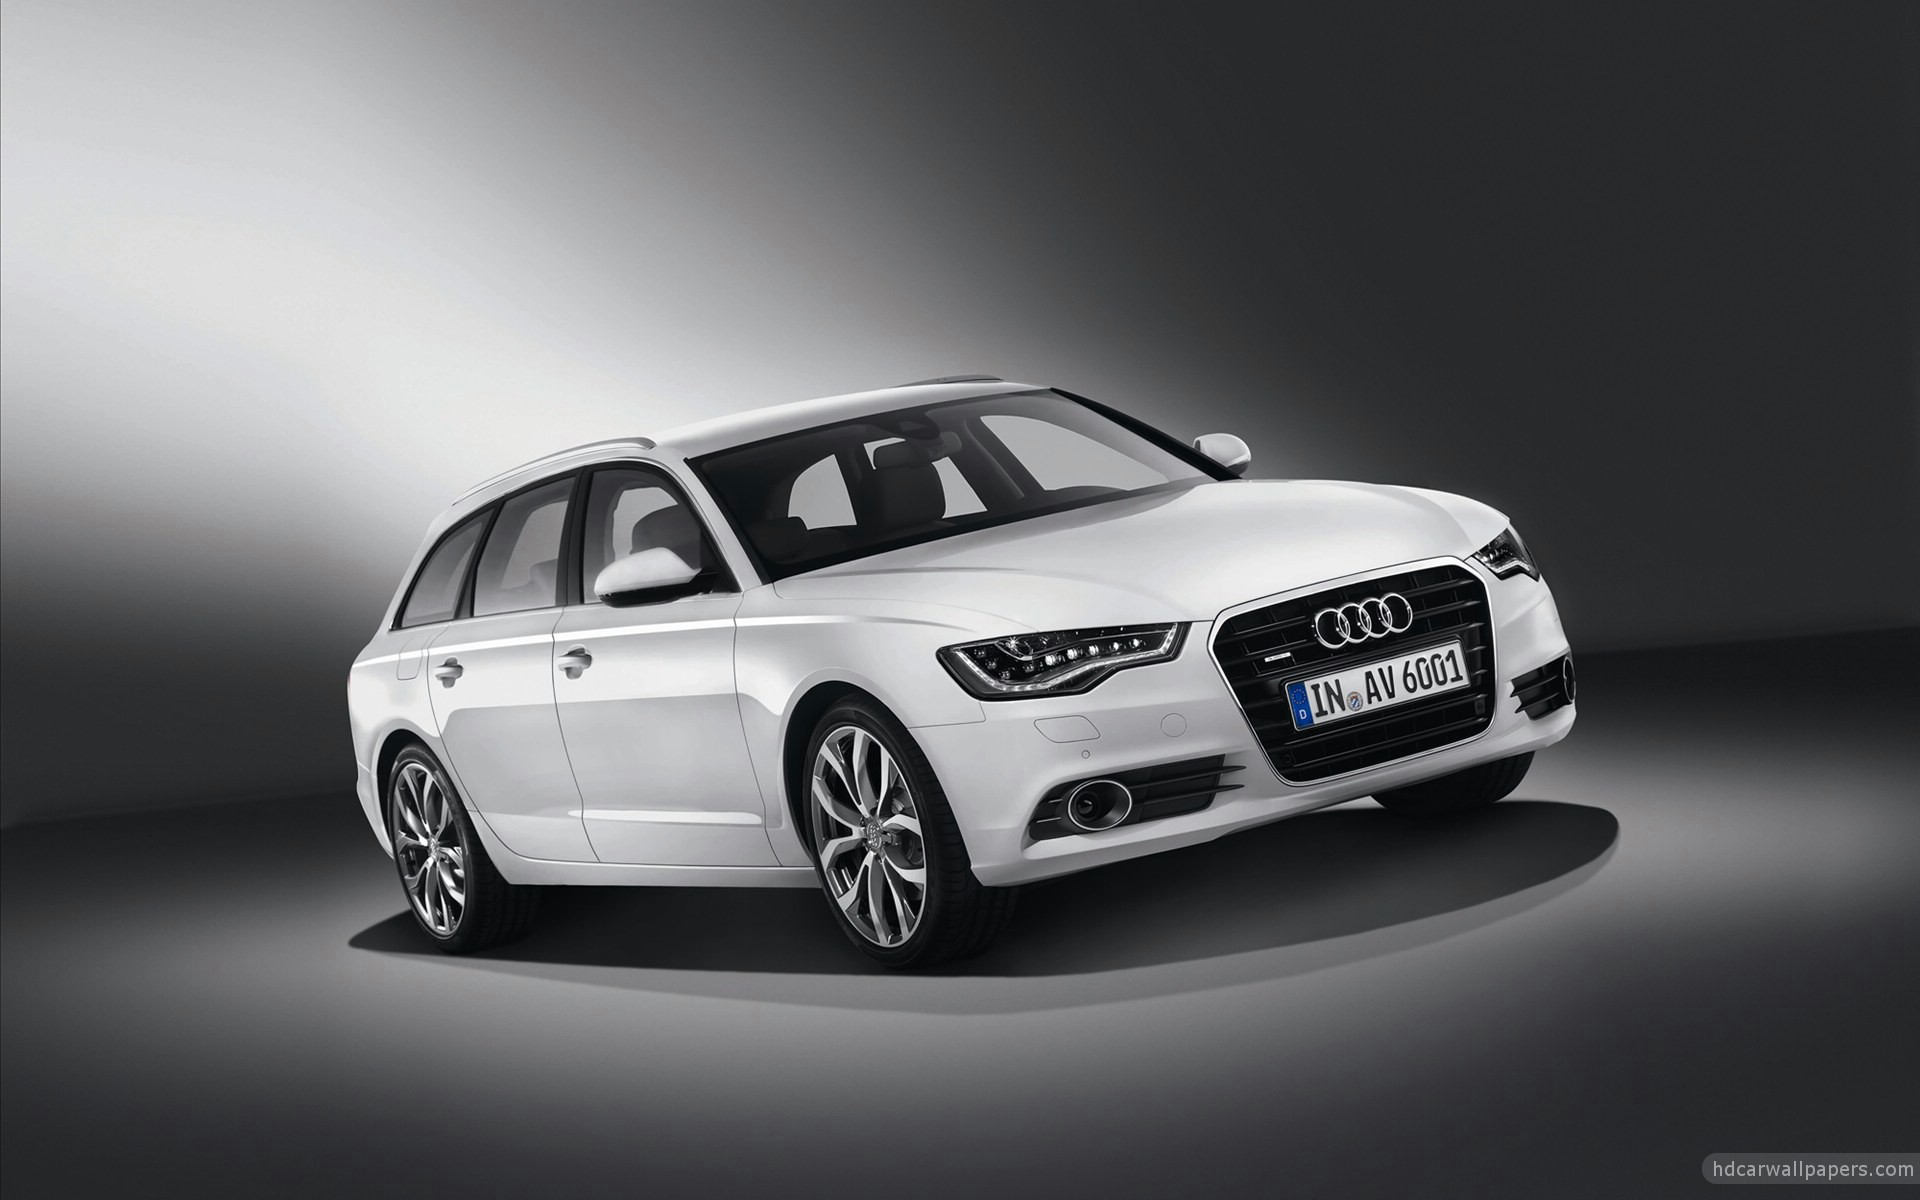 Cars Wallpapers 2014 Hd Download 2012 Audi A6 Avant Wallpaper Hd Car Wallpapers Id 2045